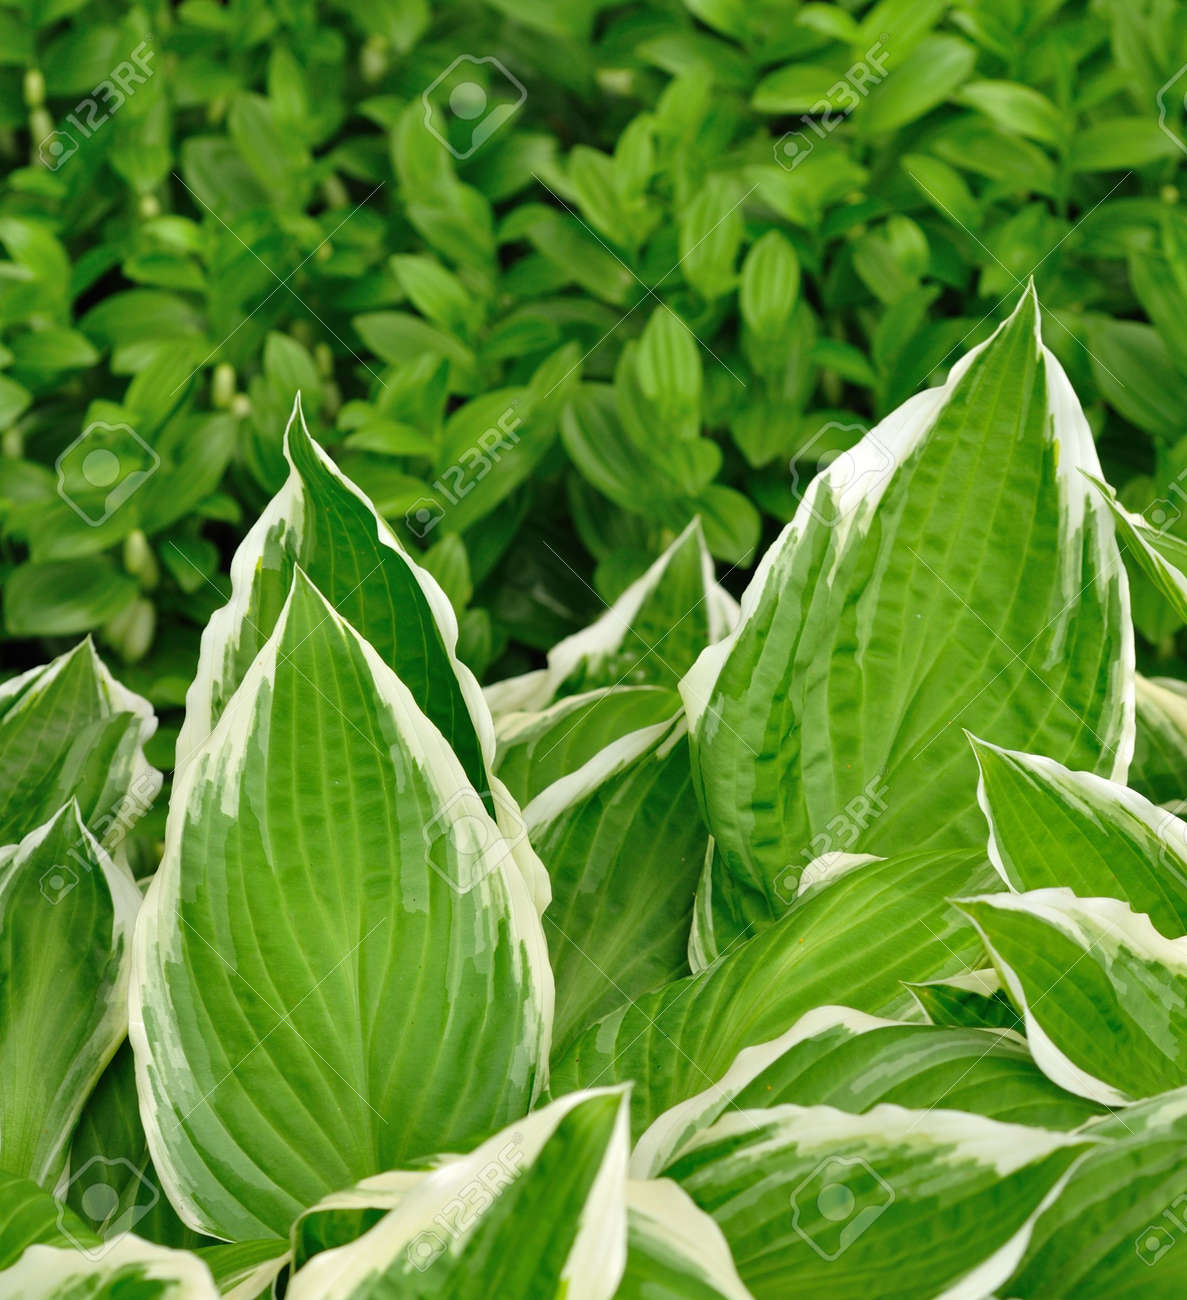 Variegated Hosta Leaves With White Edges Stock Photo Picture And